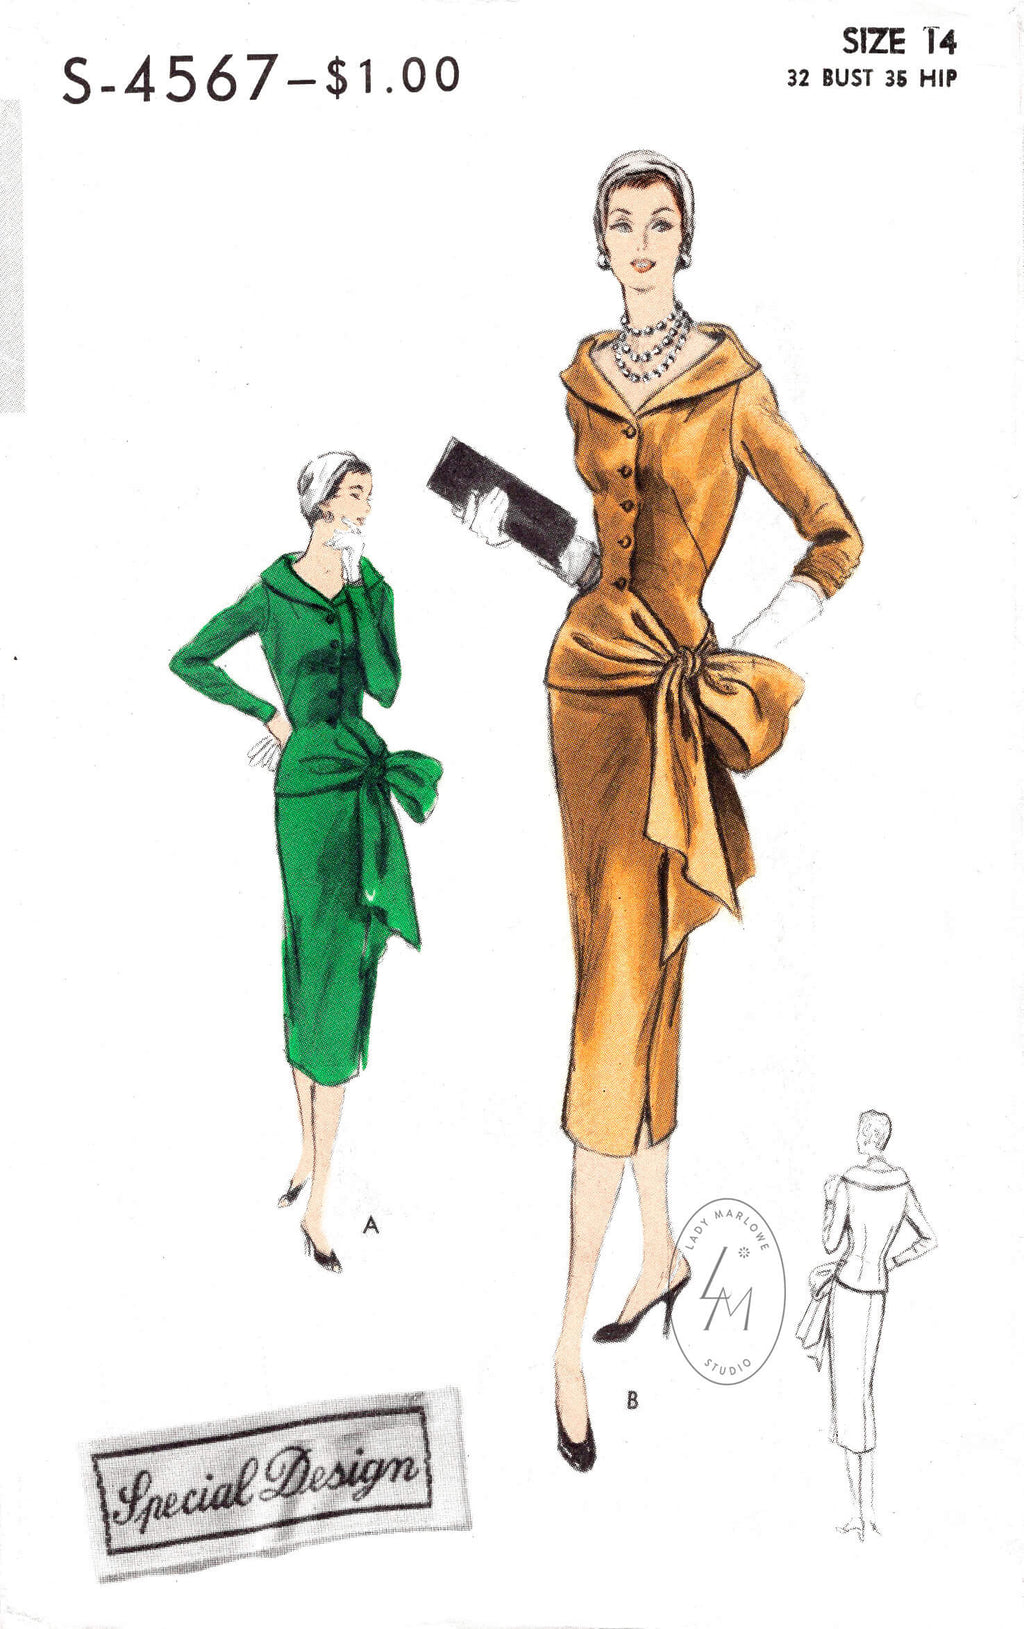 1950s dress vintage sewing pattern reproduction wiggle skirt draped side sash bow Vogue S-4567